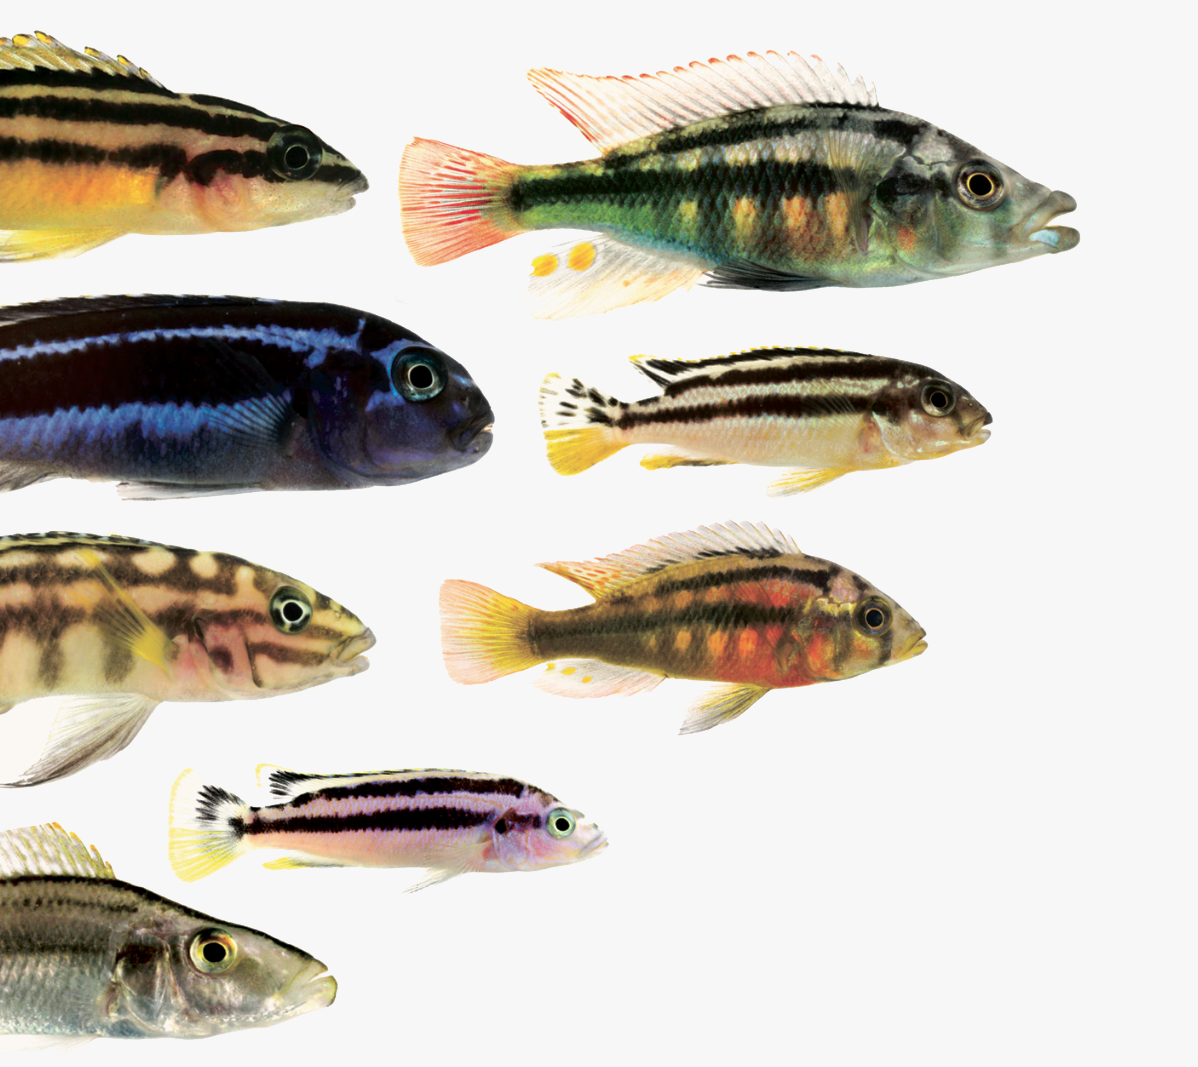 Different (colourful) species of cichlid fishes.